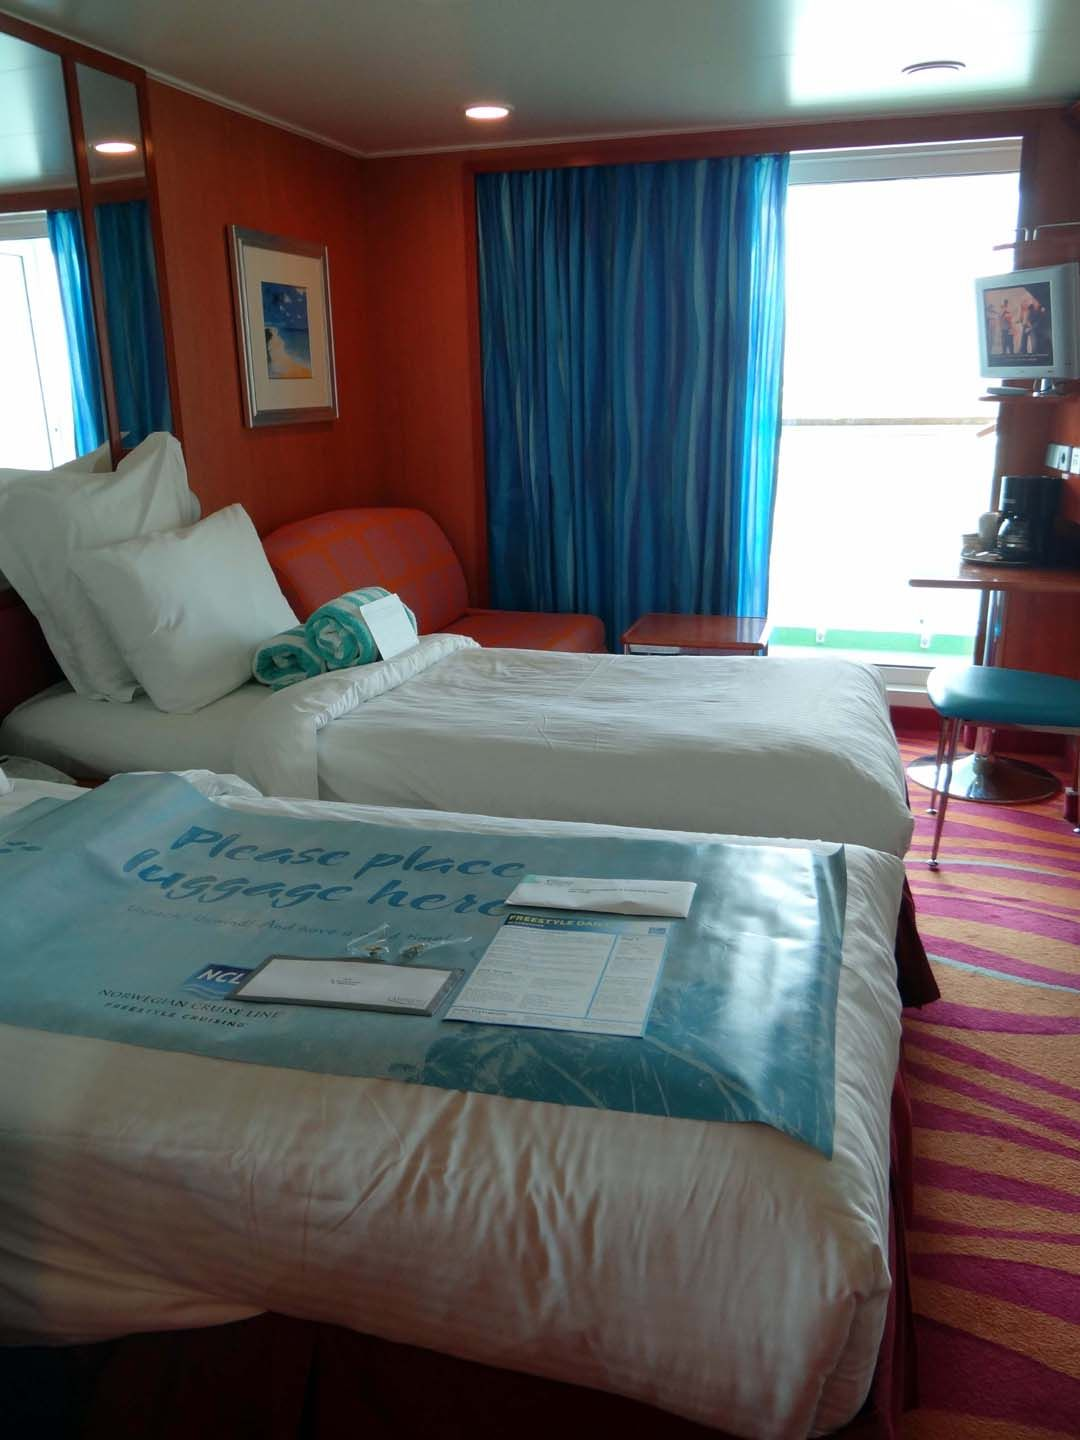 Balcony stateroom. I was surprised at how roomy it is